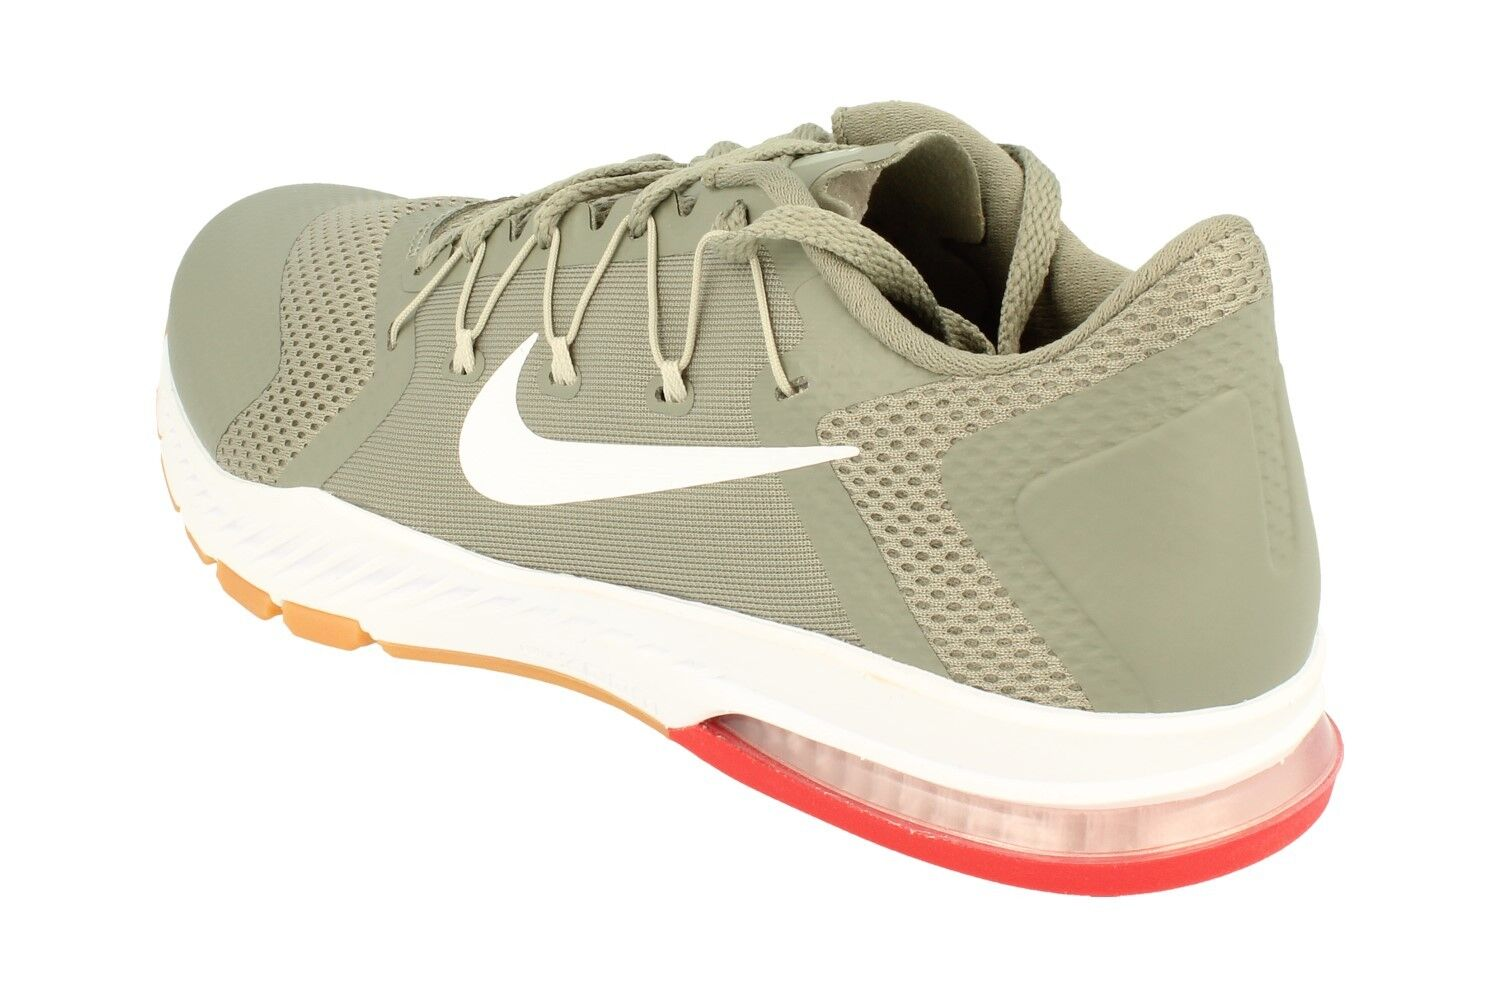 Nike Air Zoom Trainers Train Complete homme fonctionnement Trainers Zoom 882119 Sneakers chaussures 008 9e9d4c